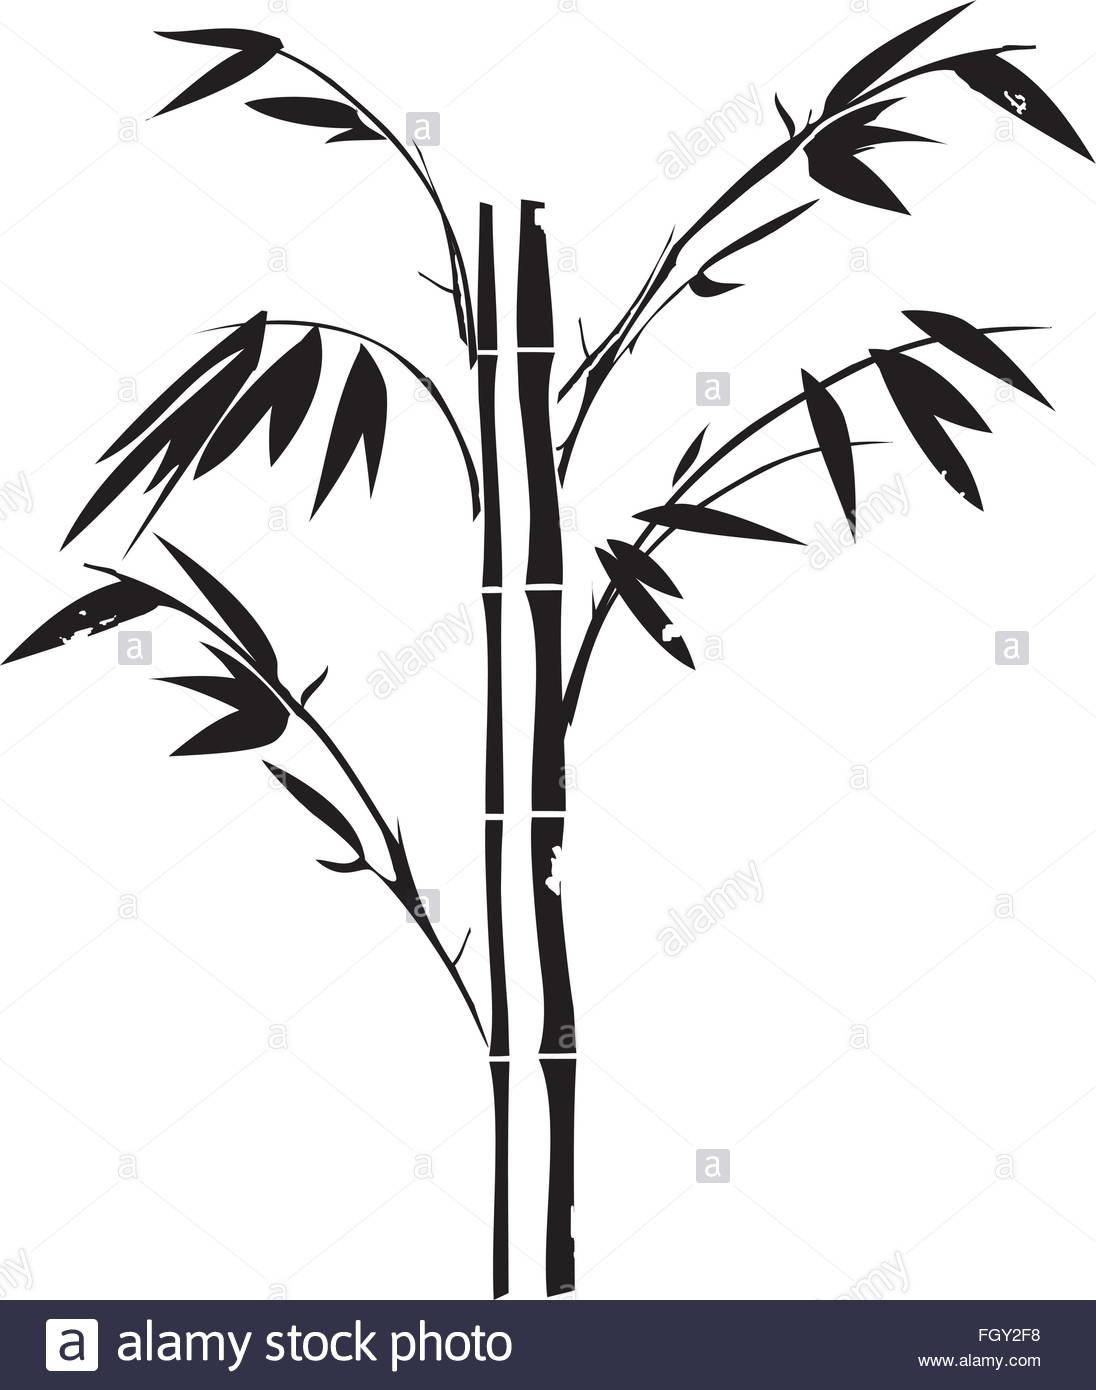 1096x1390 Vector Illustration Of A Grunge Bamboo Silhouette Stock Vector Art